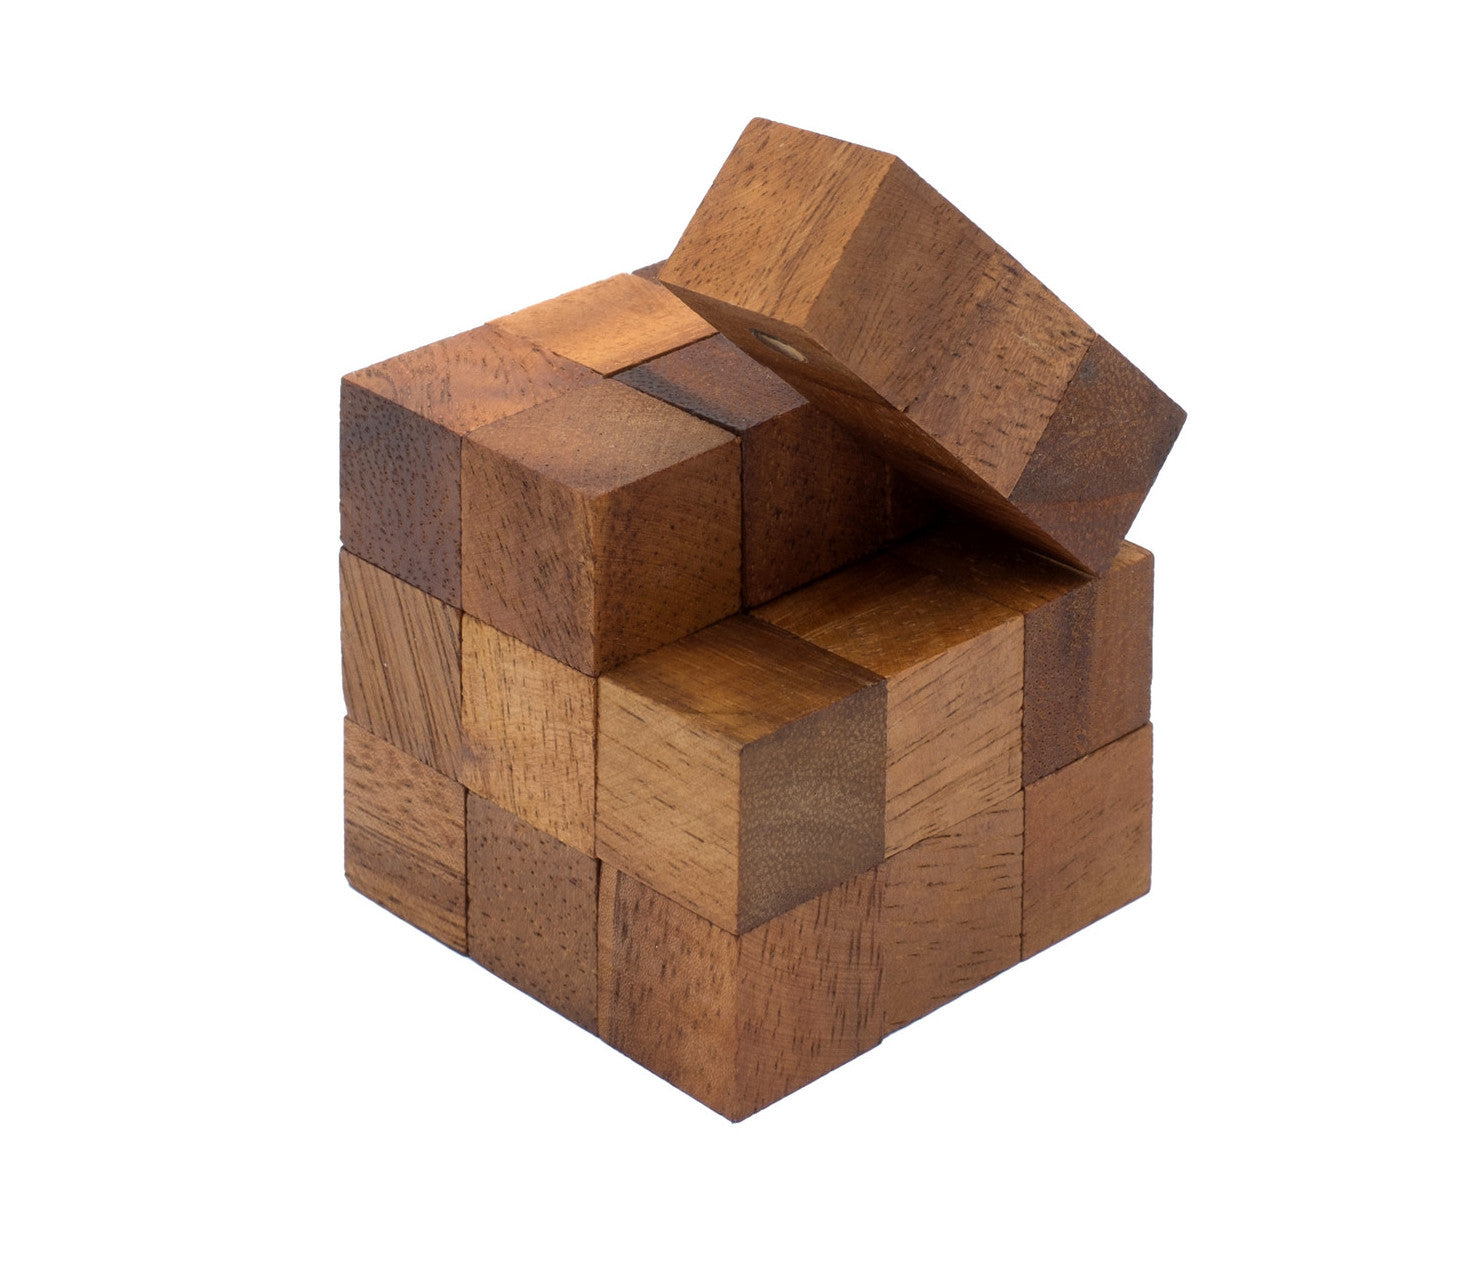 Snake Cube Puzzle or Serpent Cube Wooden Puzzle Toy